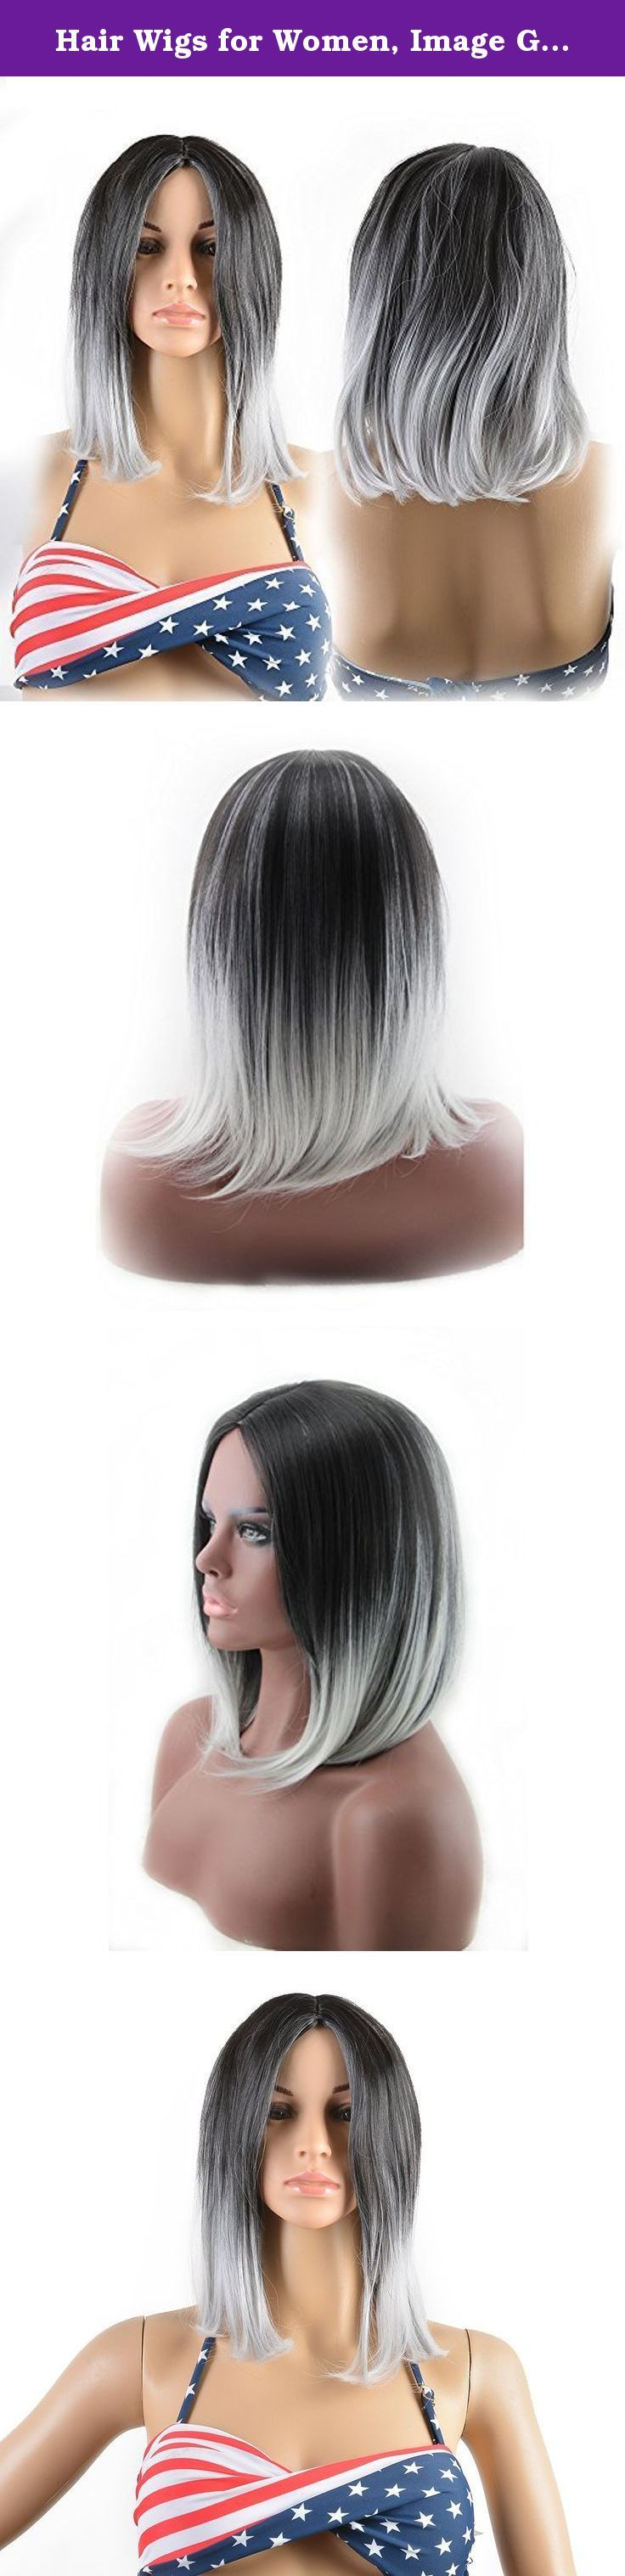 Hair Wigs for Women, Image Gradient Color Hair Extensions, Long Full Straight GREY + WHITE Wig with Wig Cap, Wig Comb and Rubber Band. IMAGE - Bring Your Beauty Salon Home! IMAGE Wigs - New Wigs, New Feelings, New You! What's the difference between IMAGE WIG and the others: (1) we adopted 100% Matt high temperature fiber which is the best fiber material for wig. Its physical properties, appearance, color and natural. (2) The wave and curls of the hair are specially designed to look...